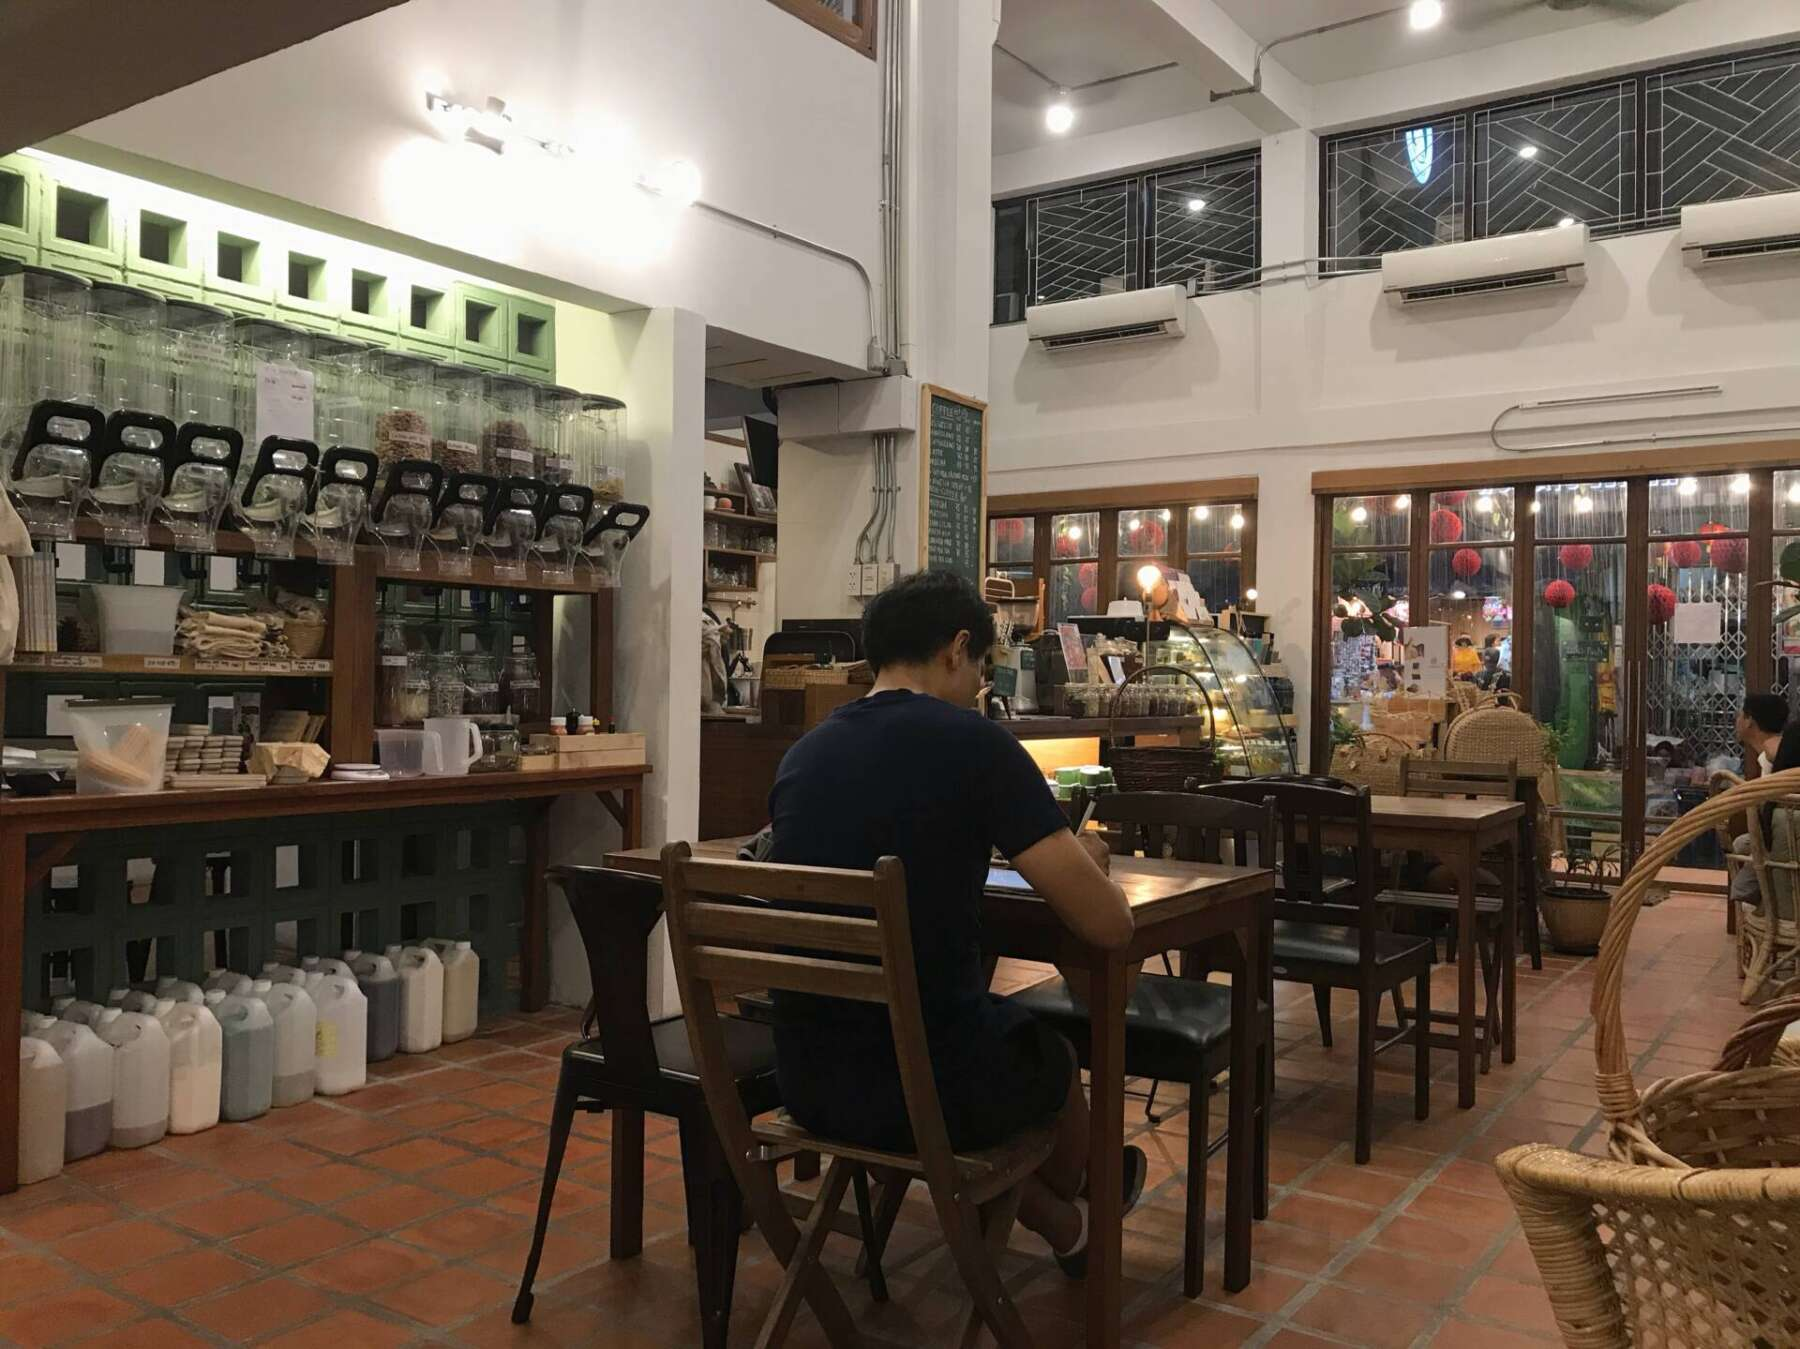 Better Moon Cafe and Refill Station